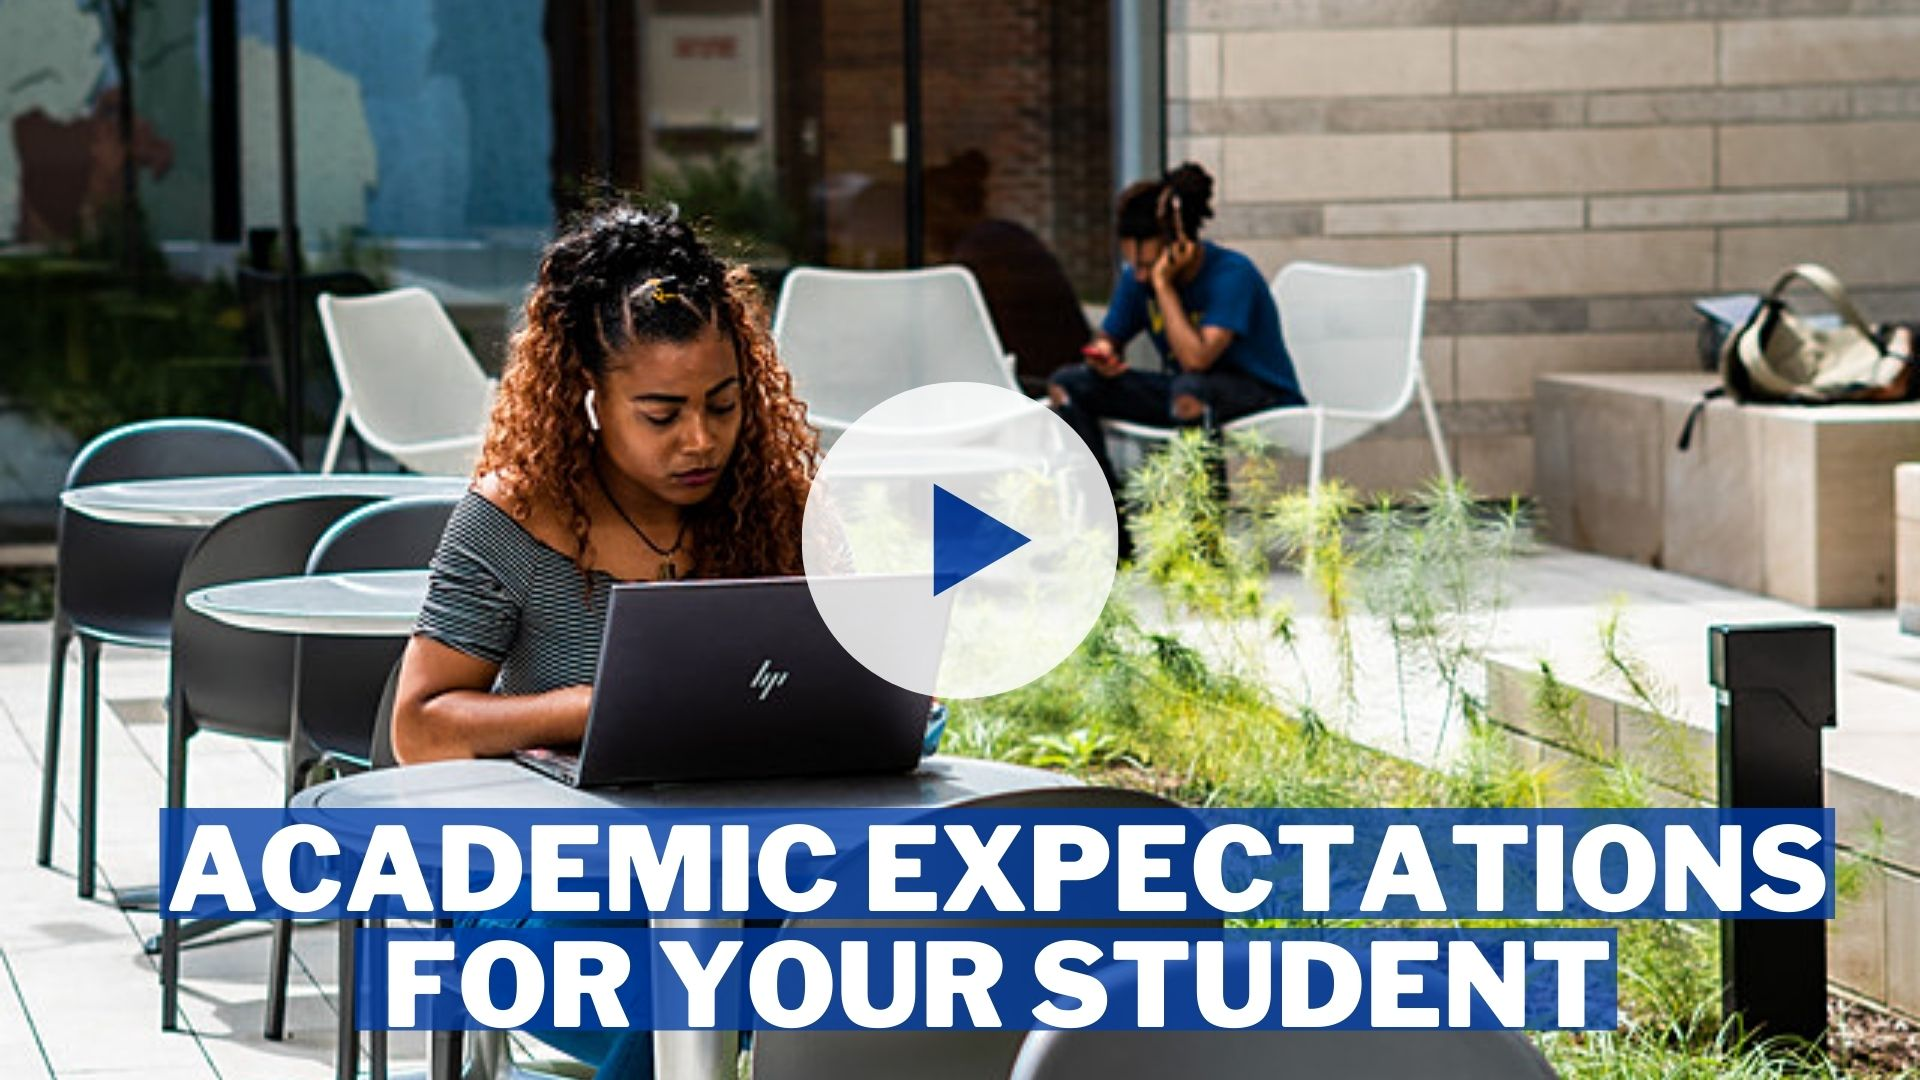 Academic Expectations for Your Student